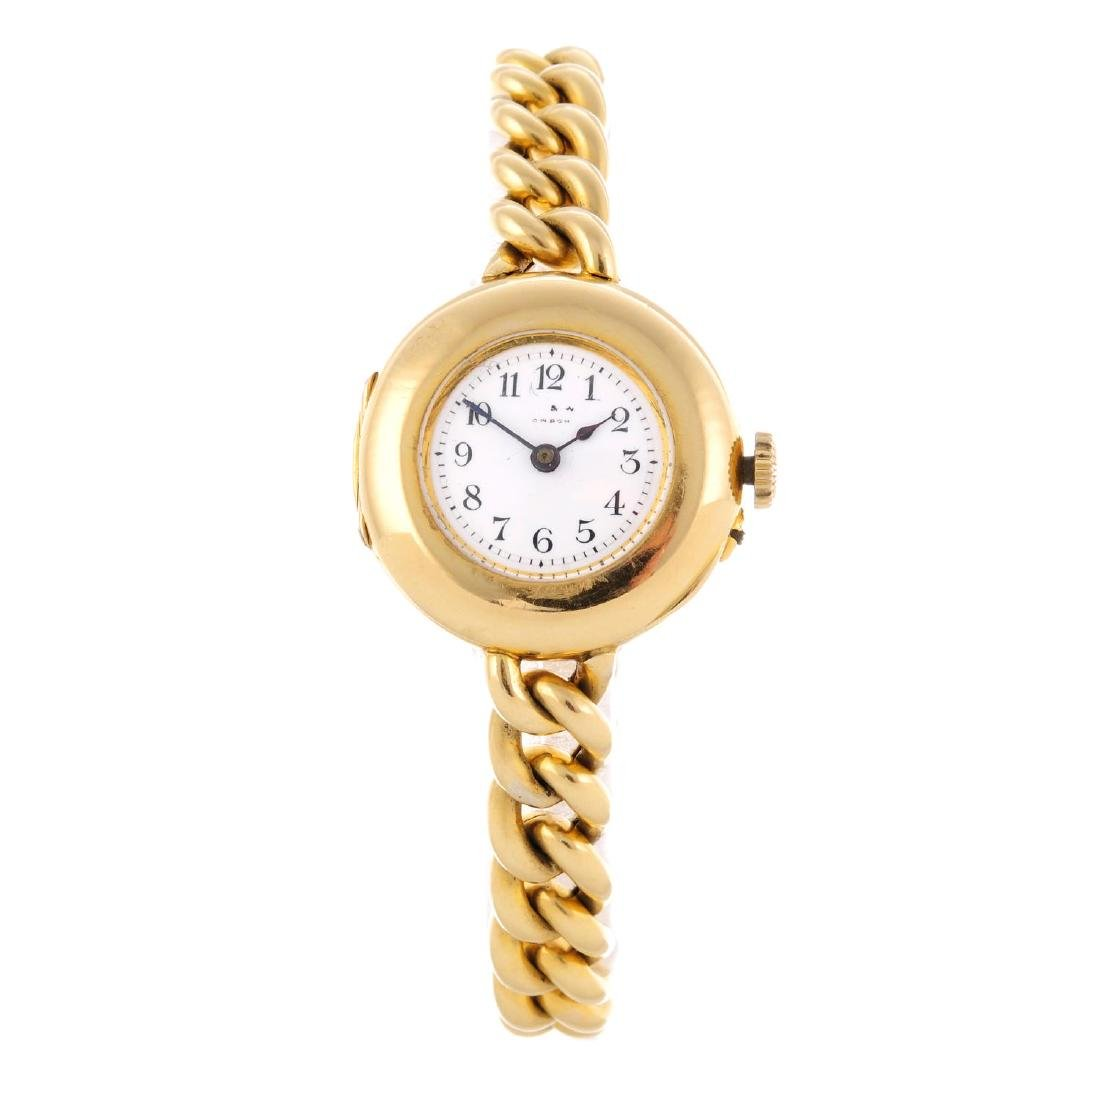 A lady's bracelet watch. 18ct yellow gold case, import